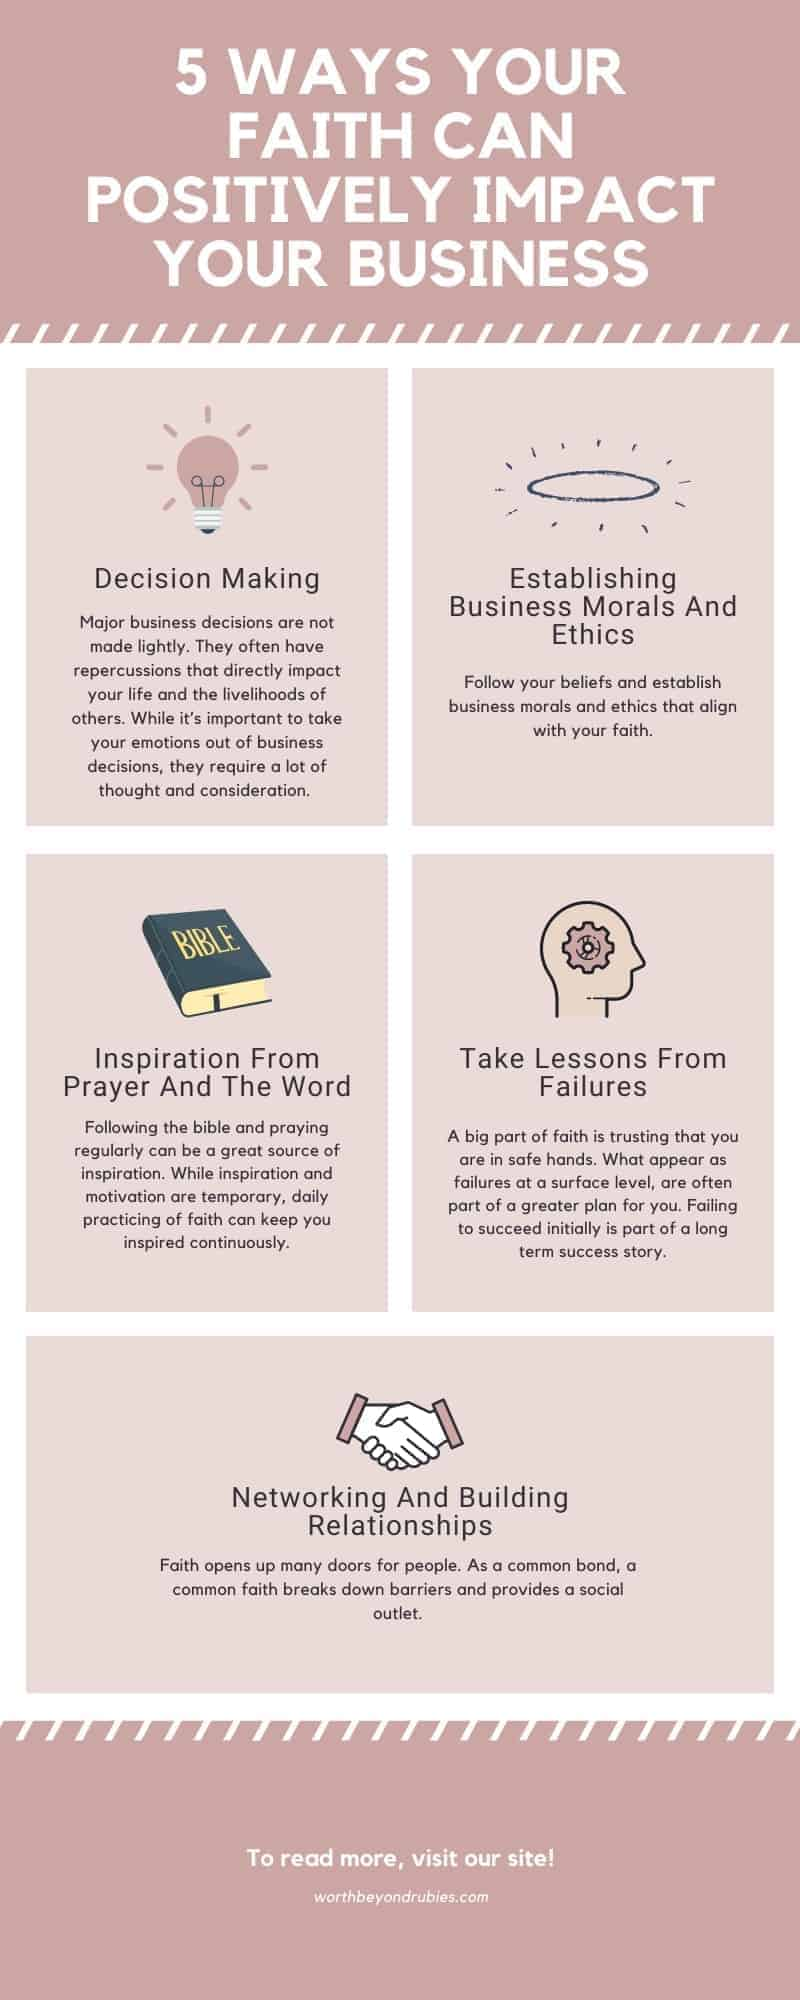 An infographic with 5 ways your faith can impact your business - which is a summary of the list found on the associated blog post